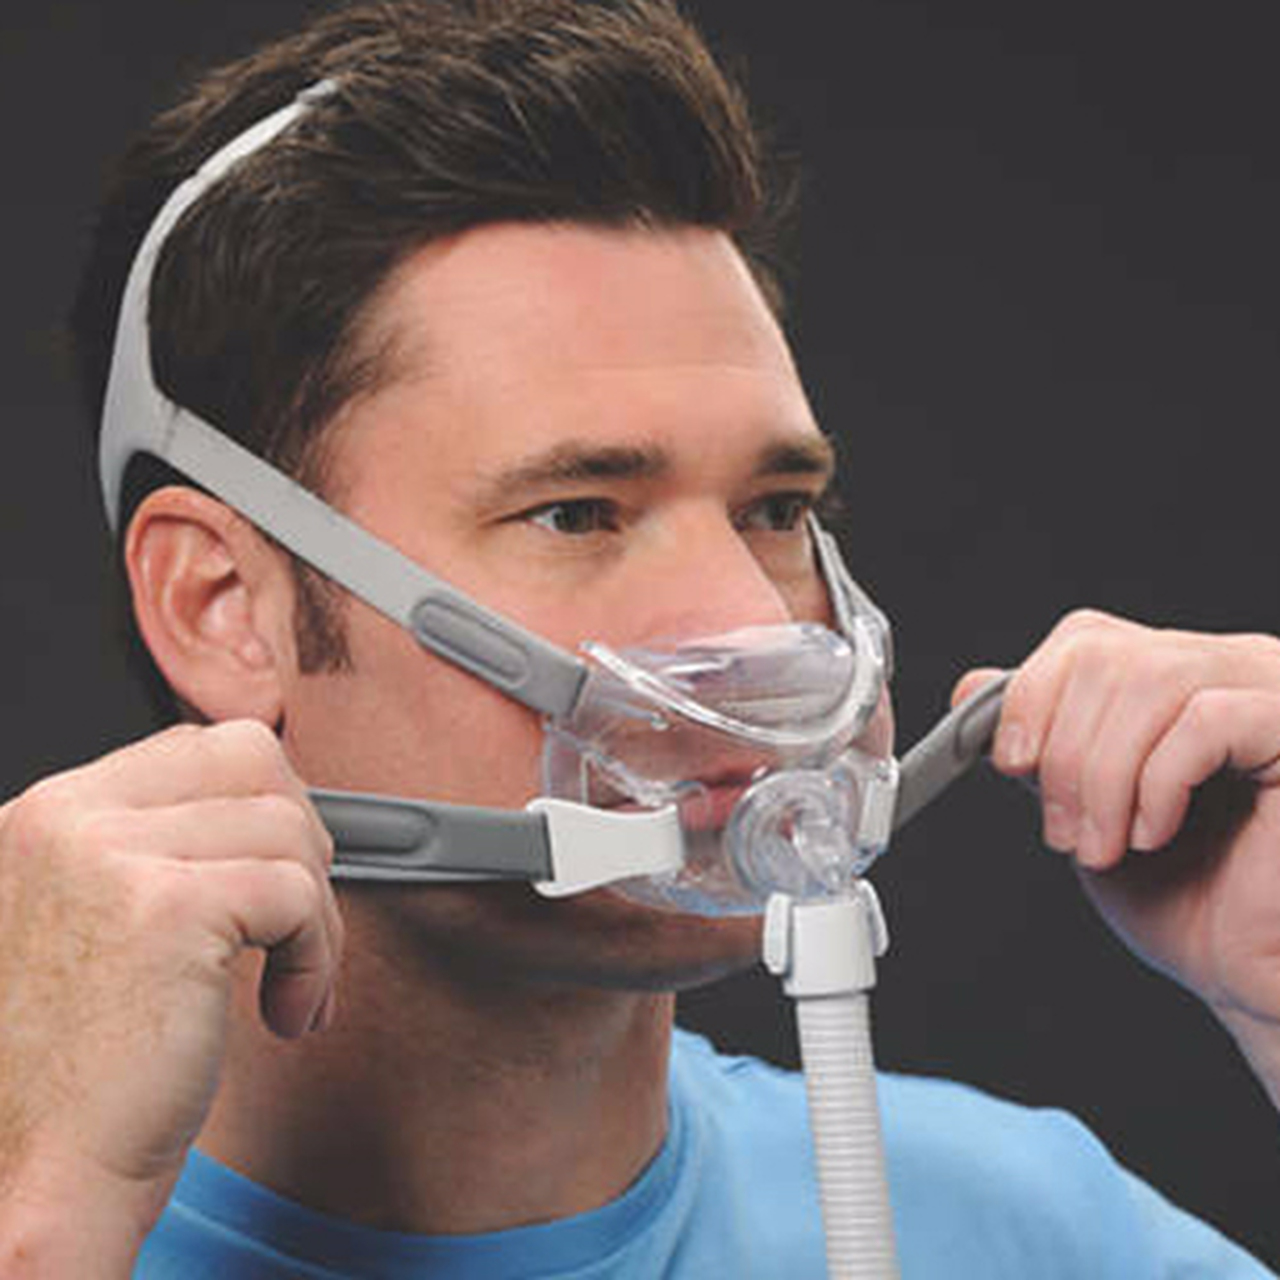 Phillips Respironics Amara View Full Face CPAP Mask with Headgear